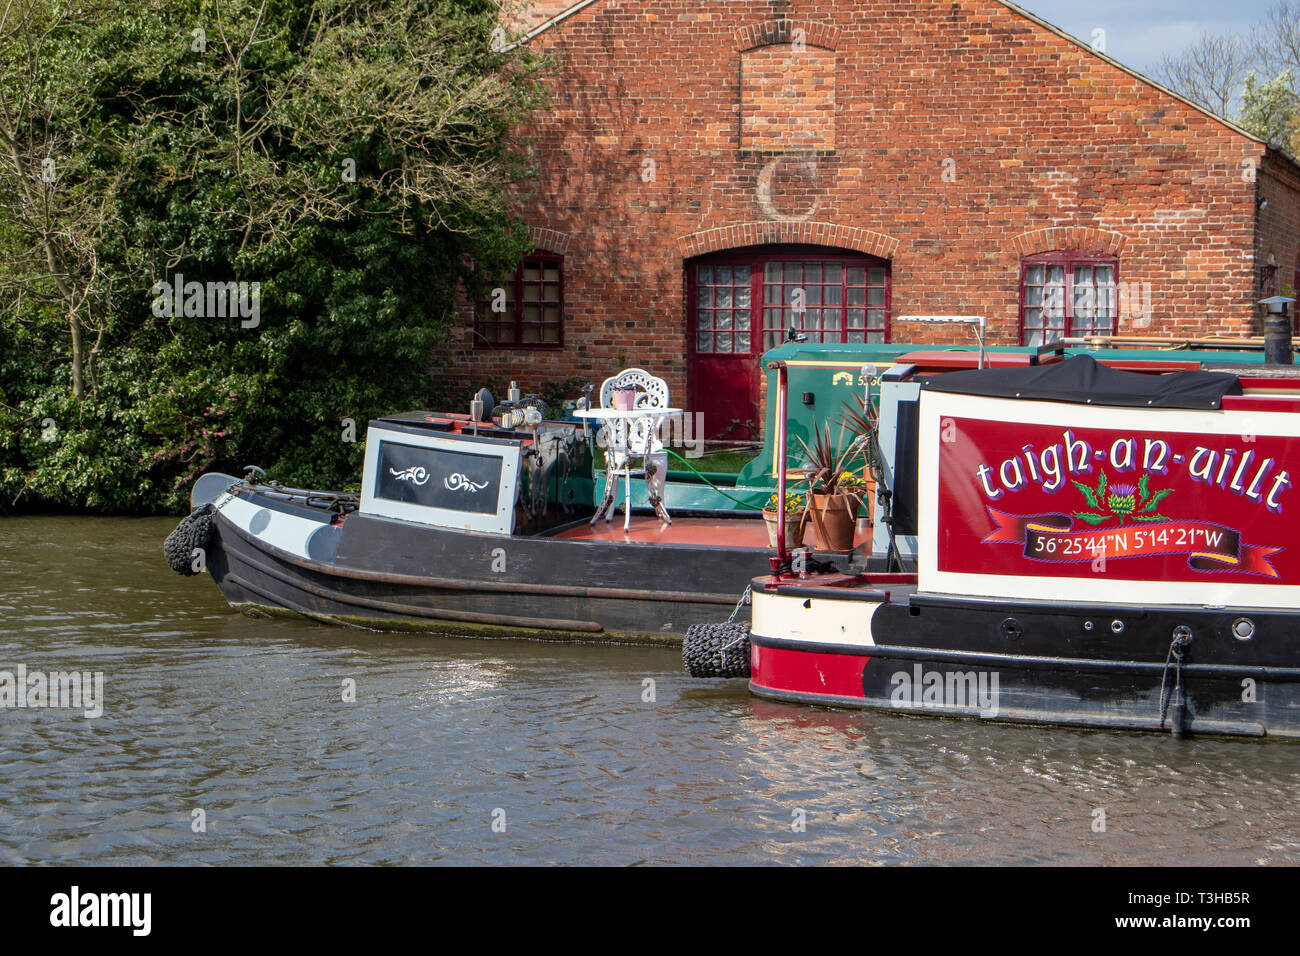 Narrowboats & Barges on the Trent and Mersey Canal at Shardlow Marina,Derby.Derbyshire.England - Stock Image